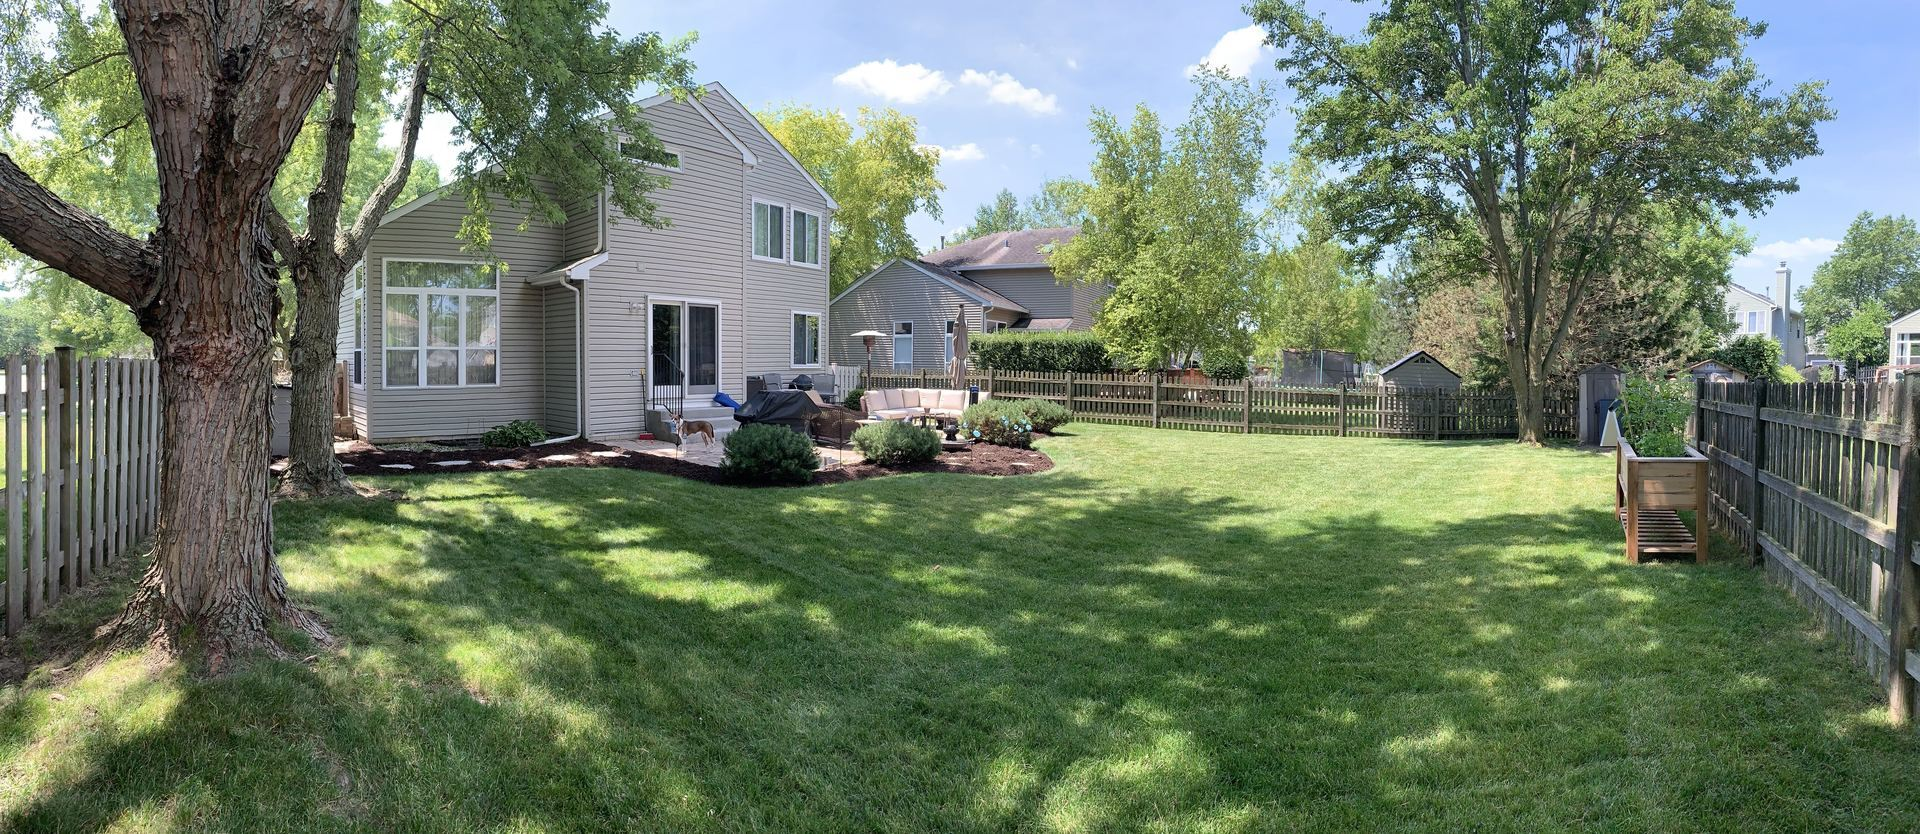 1 Sweetwater Court, Lake in the Hills, IL 60156 - #: 10930078